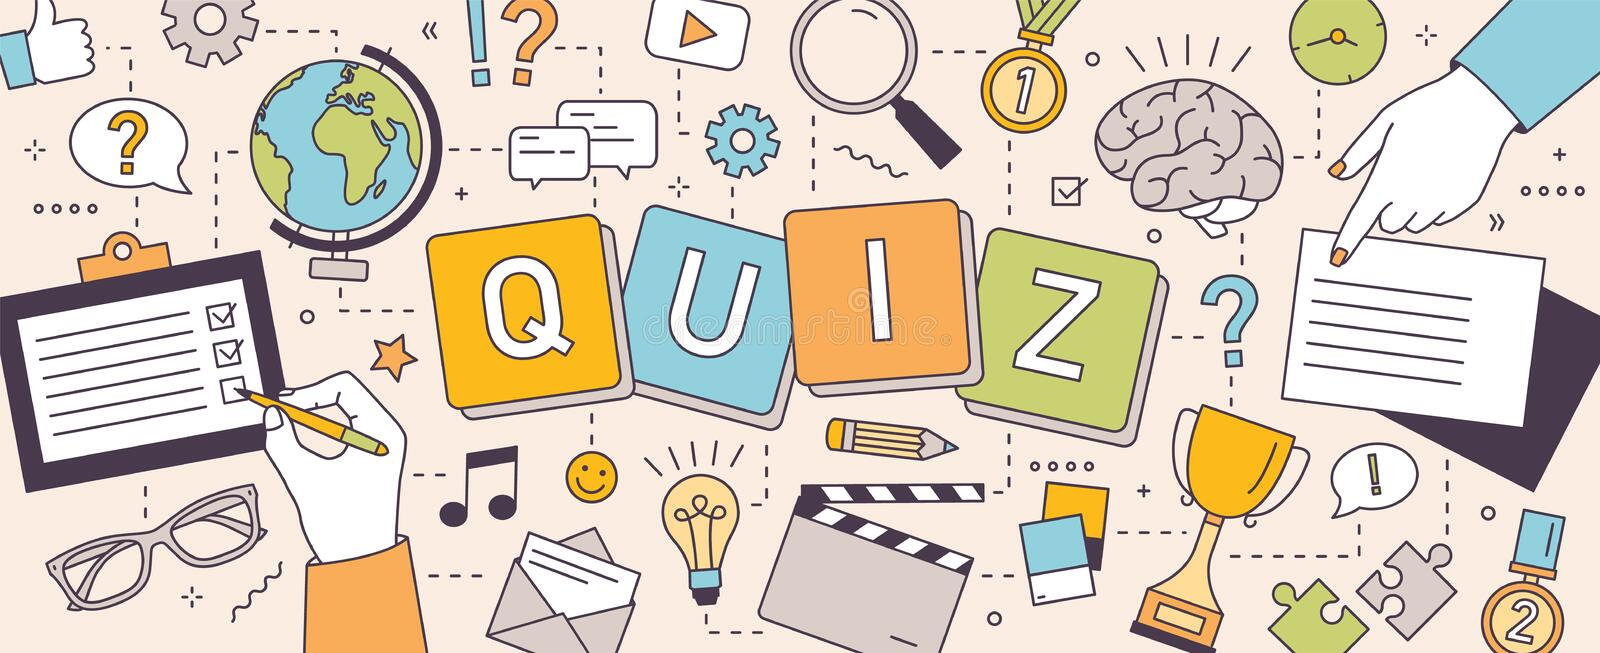 Horizontal banner with hands of people solving puzzles or brain teasers and answering quiz questions. Team intellectual. Game to test intelligence or intellect stock illustration